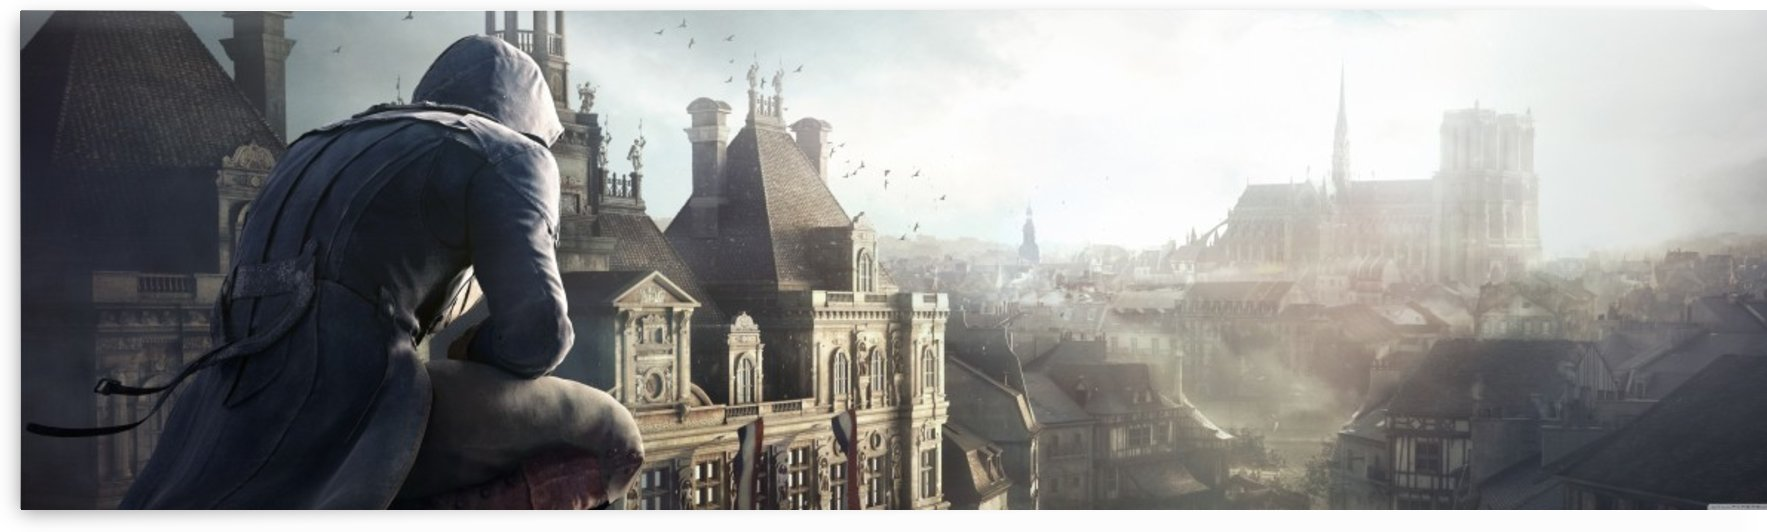 Assassins creed unity arno by Alex Pell